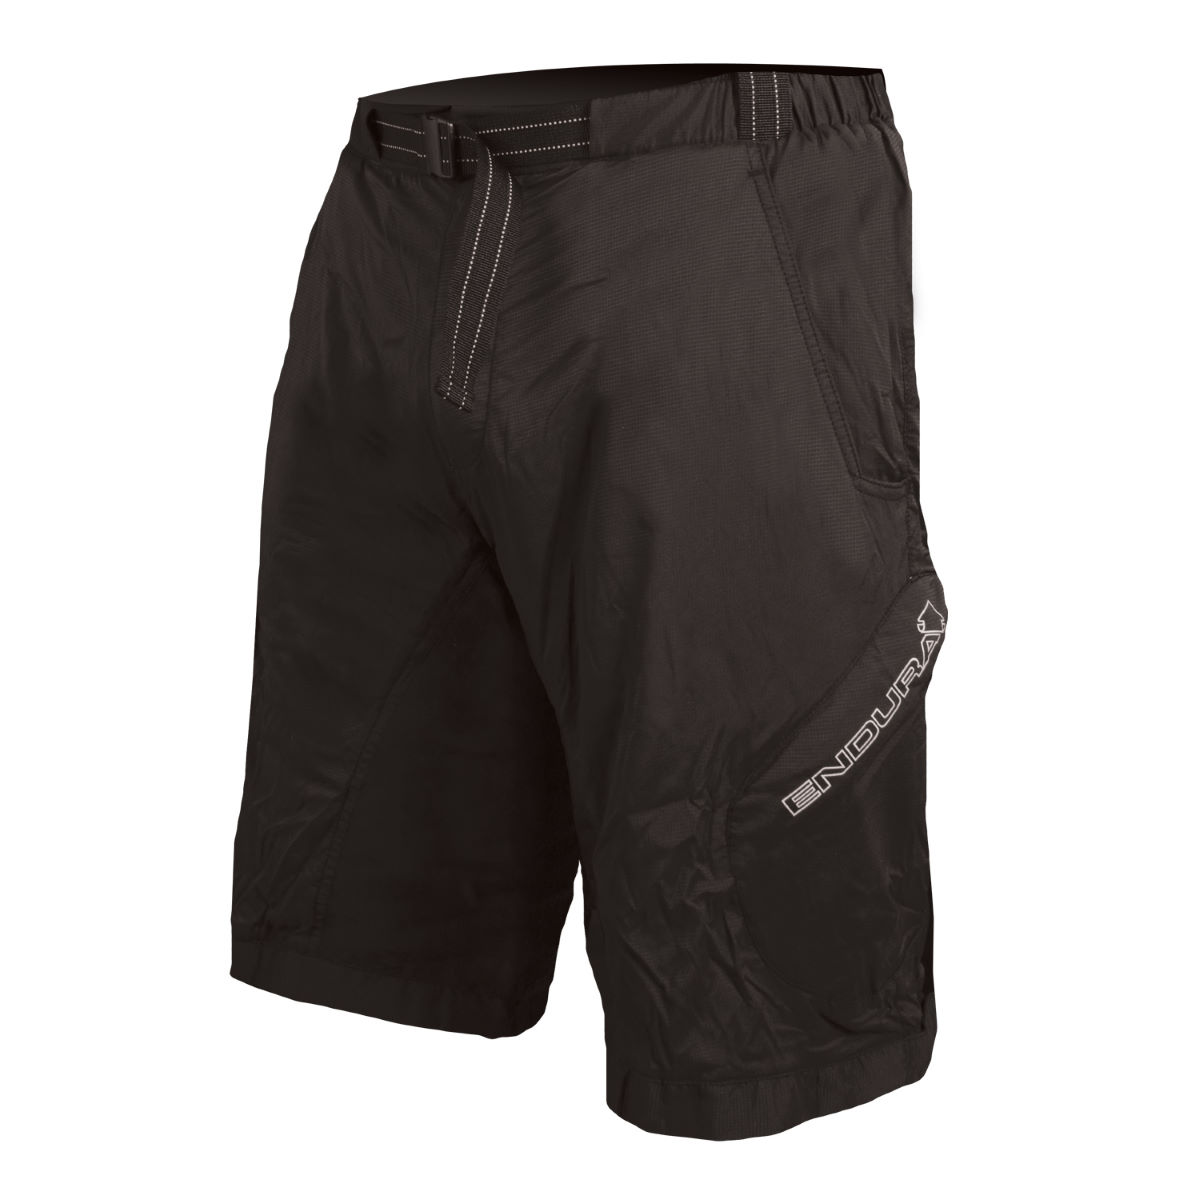 Short Endura Hummvee Lite - Small Noir Shorts VTT